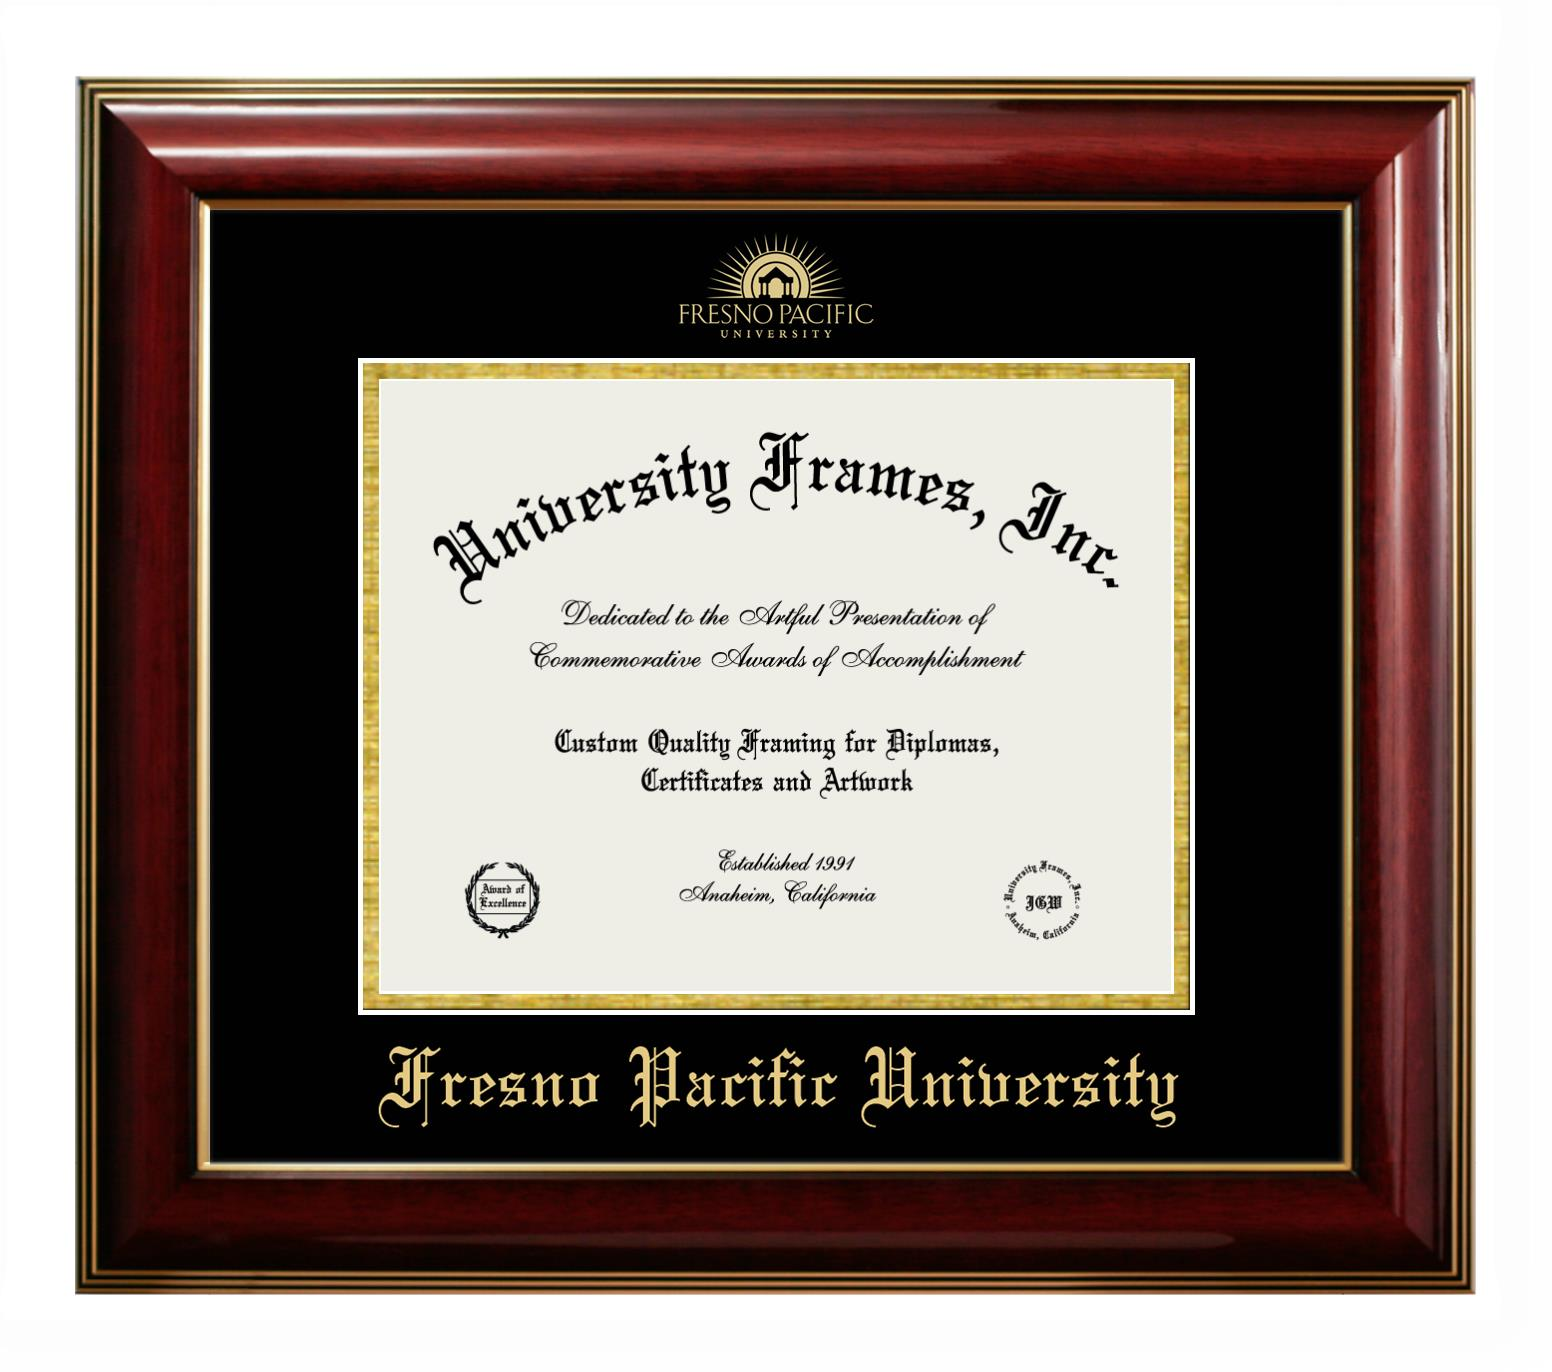 Fresno Pacific University Diploma Frame In Executive With Gold Fillet With Black Suede Mat